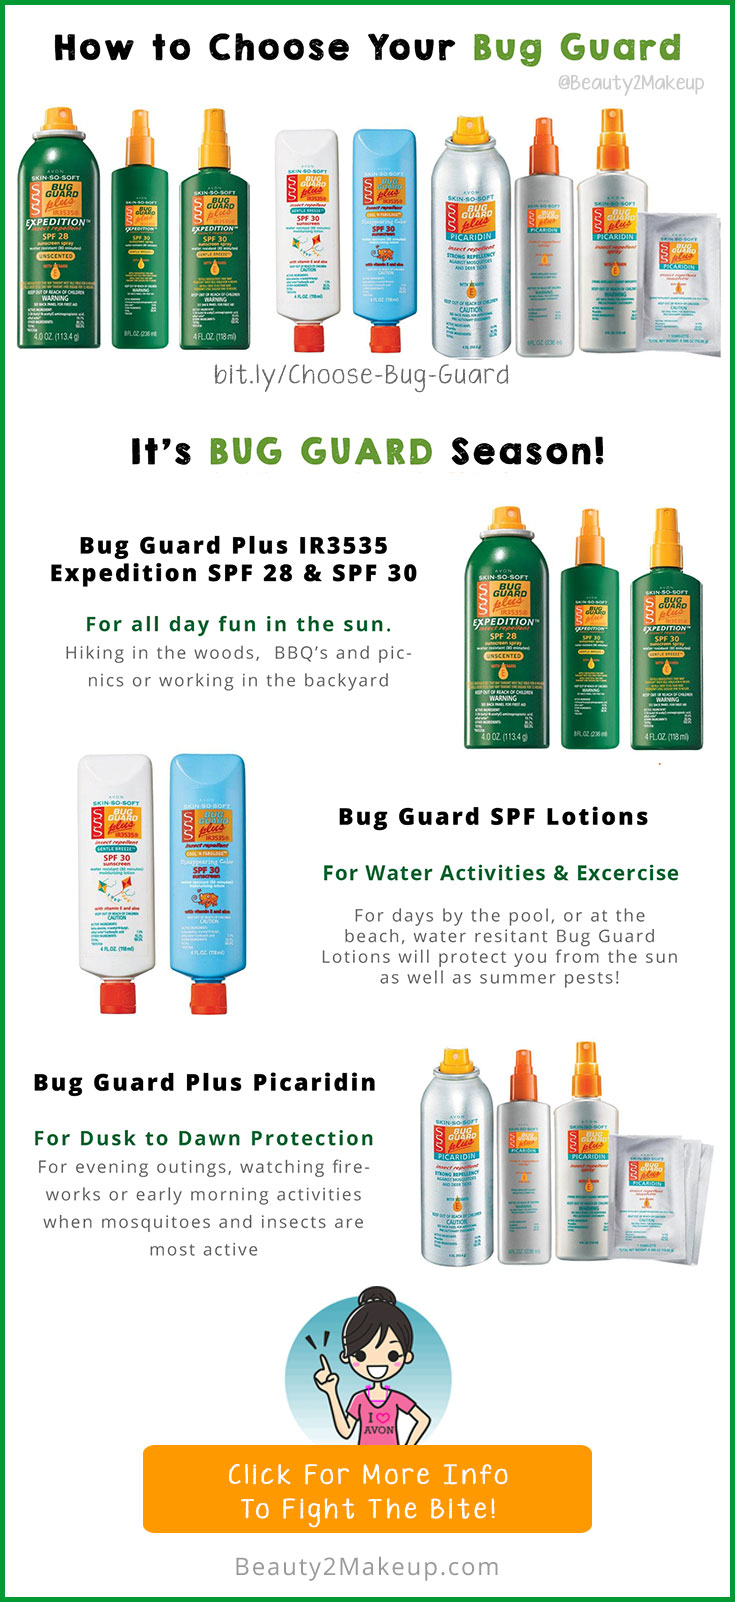 Avon Skin So Soft is great for repelling insects! Find out how to use and which is best for you! Skin So Soft Bug Guard is safe for the whole family